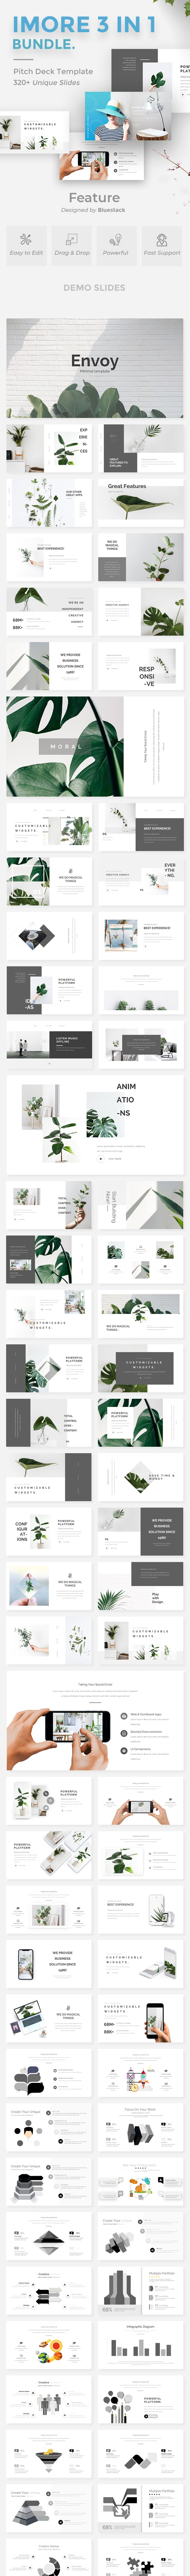 iMore 3 in 1 Bundle Powerpoint Creative Template - Creative PowerPoint Templates